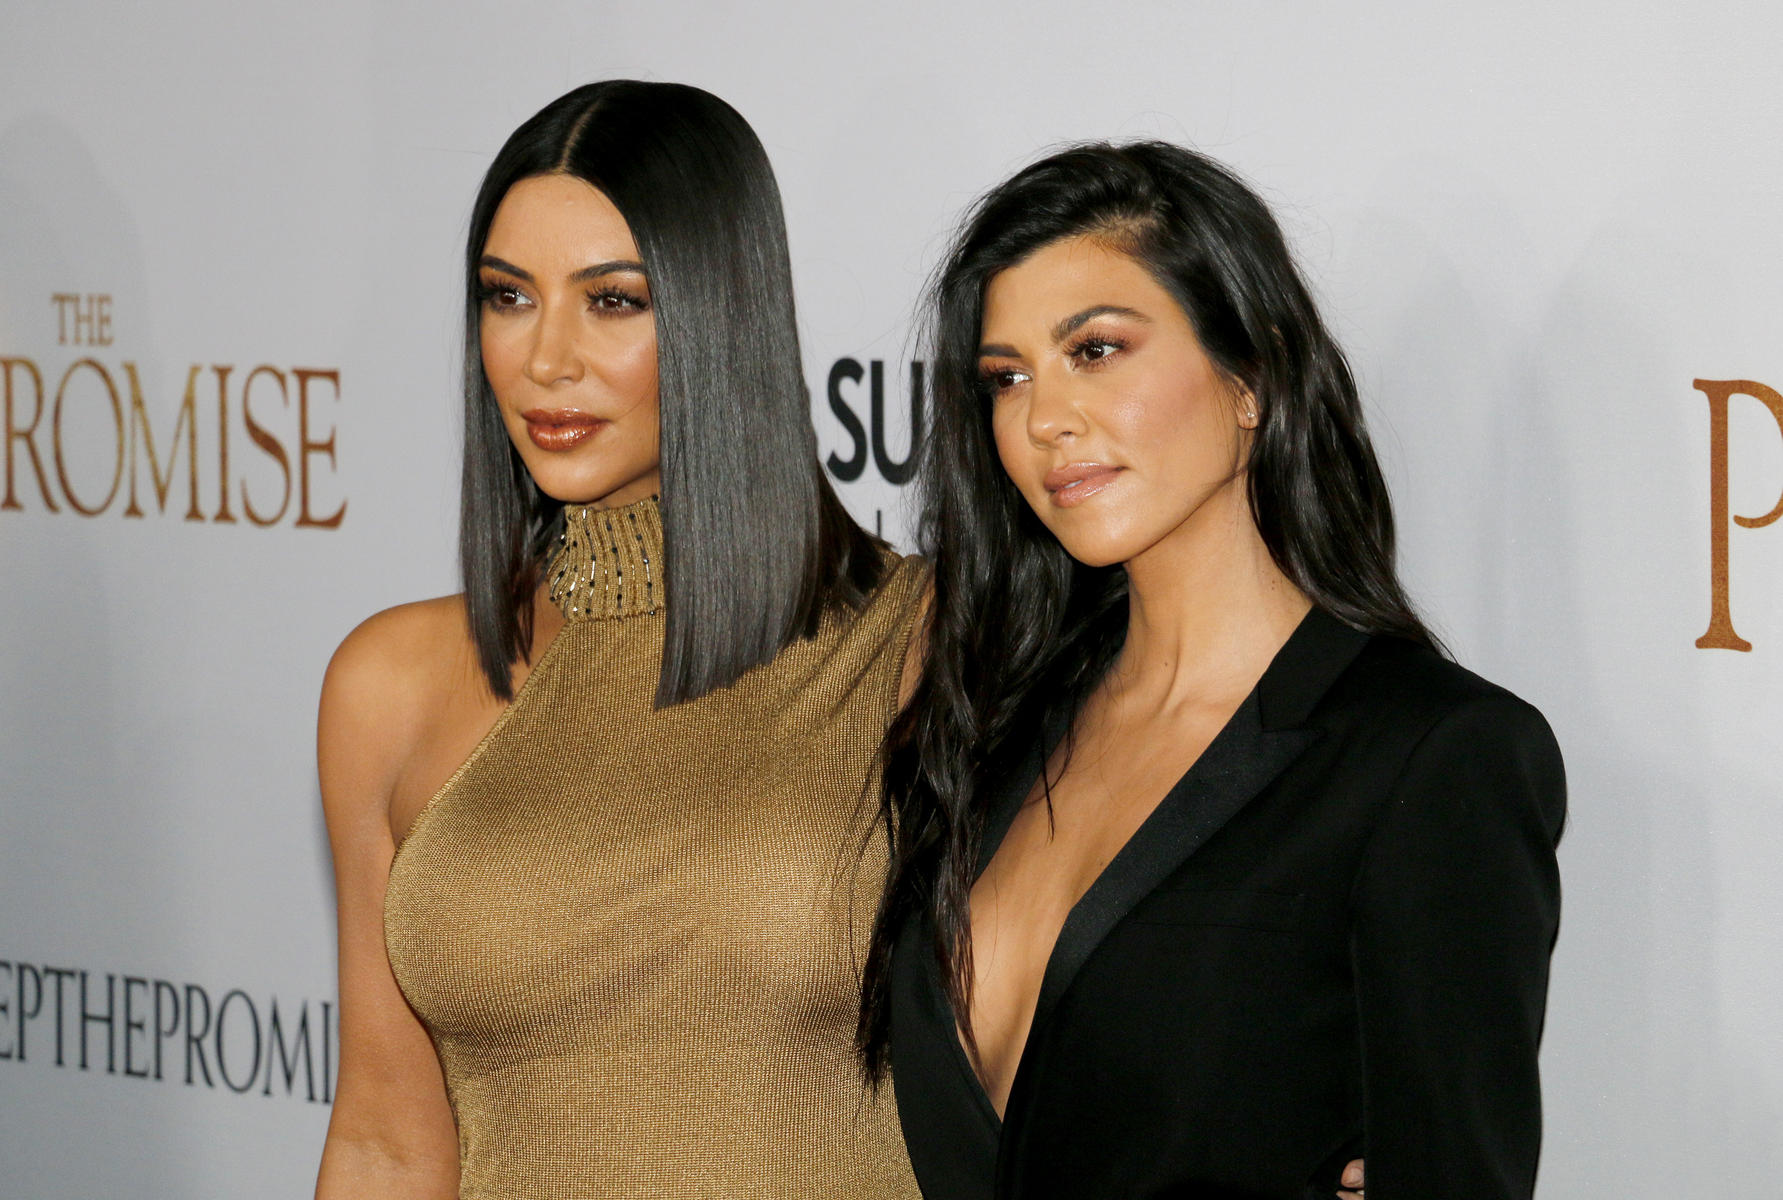 Kim Kardashian and Kourtney Kardashian